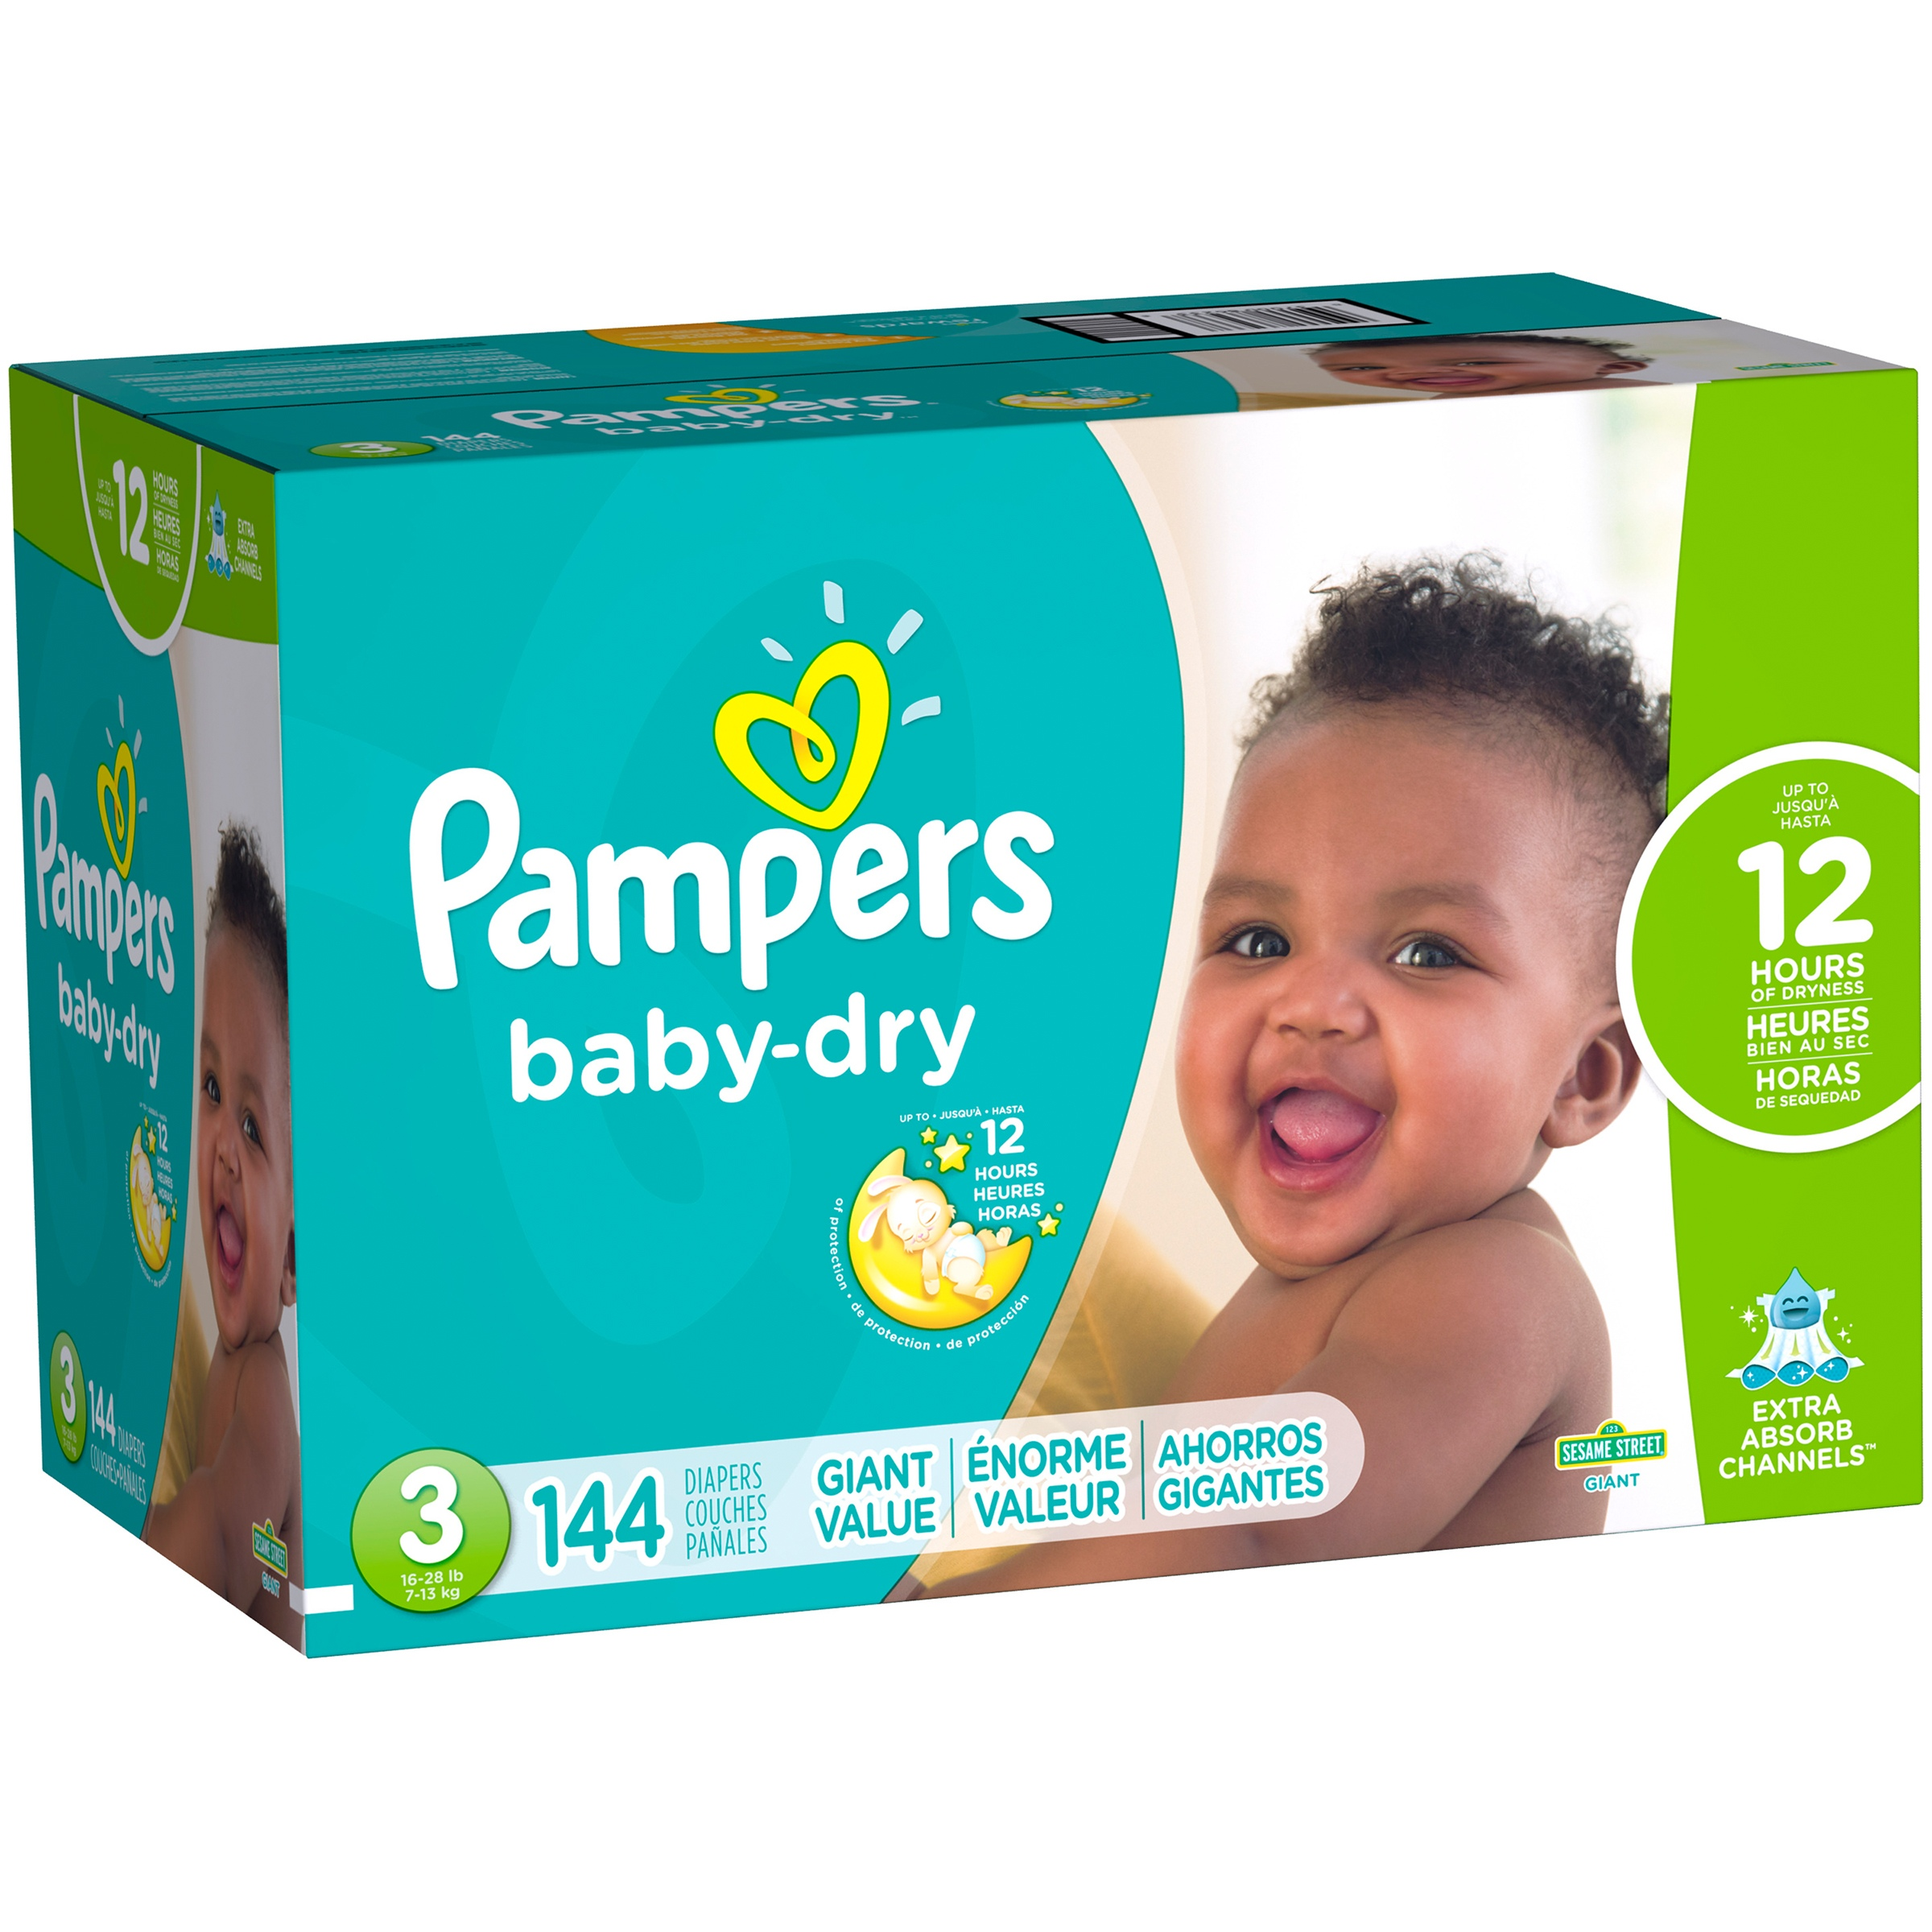 Pampers Baby Dry Diapers, Size 3, 144 Diapers - Walmart.com